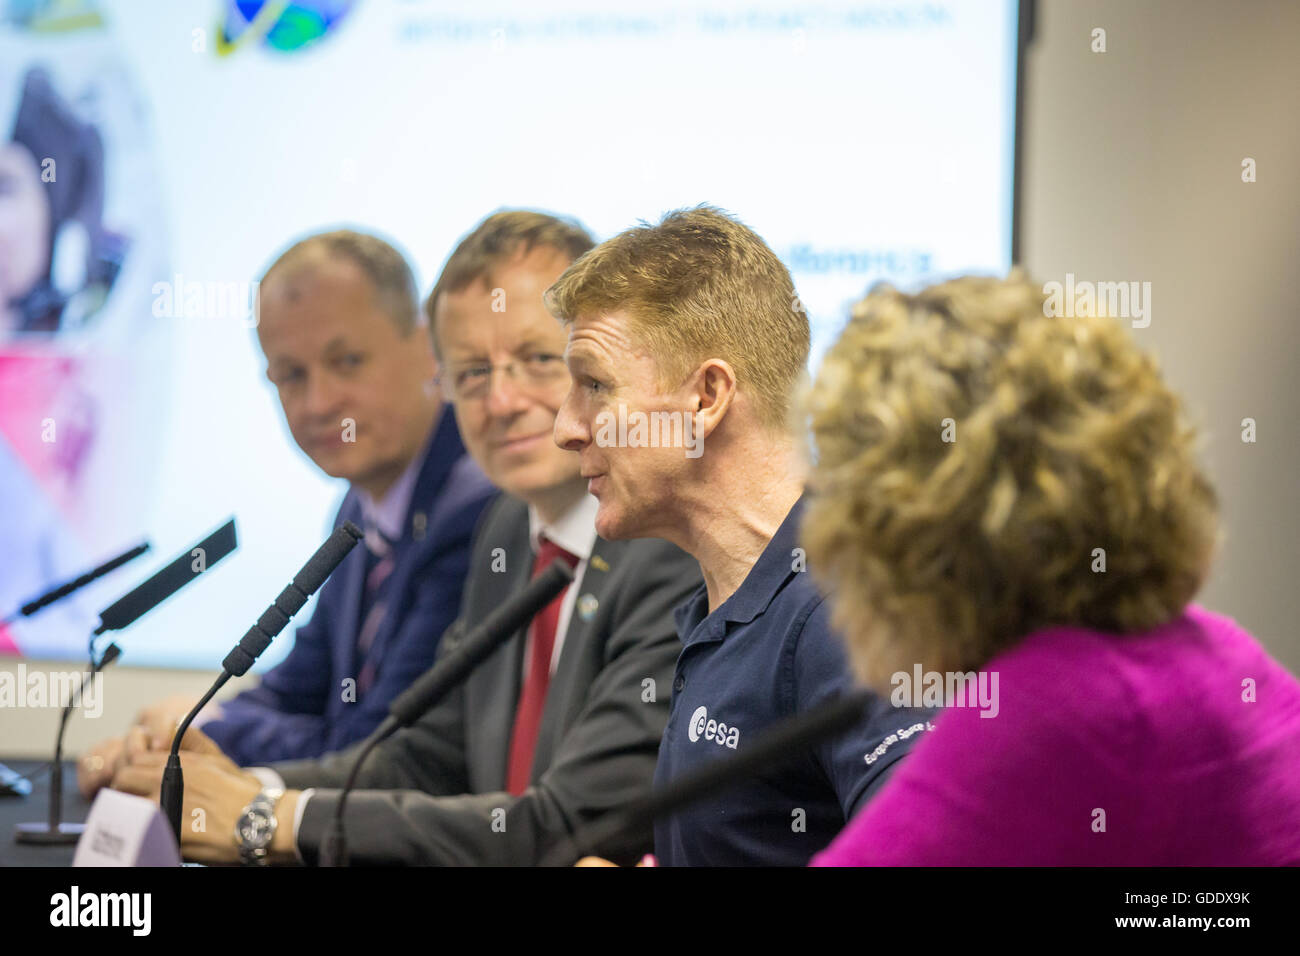 Farnborough, Hampshire UK. 15th July 2016. Astronaut Tim Peake speaks at his first UK press conference since landing. - Stock Image